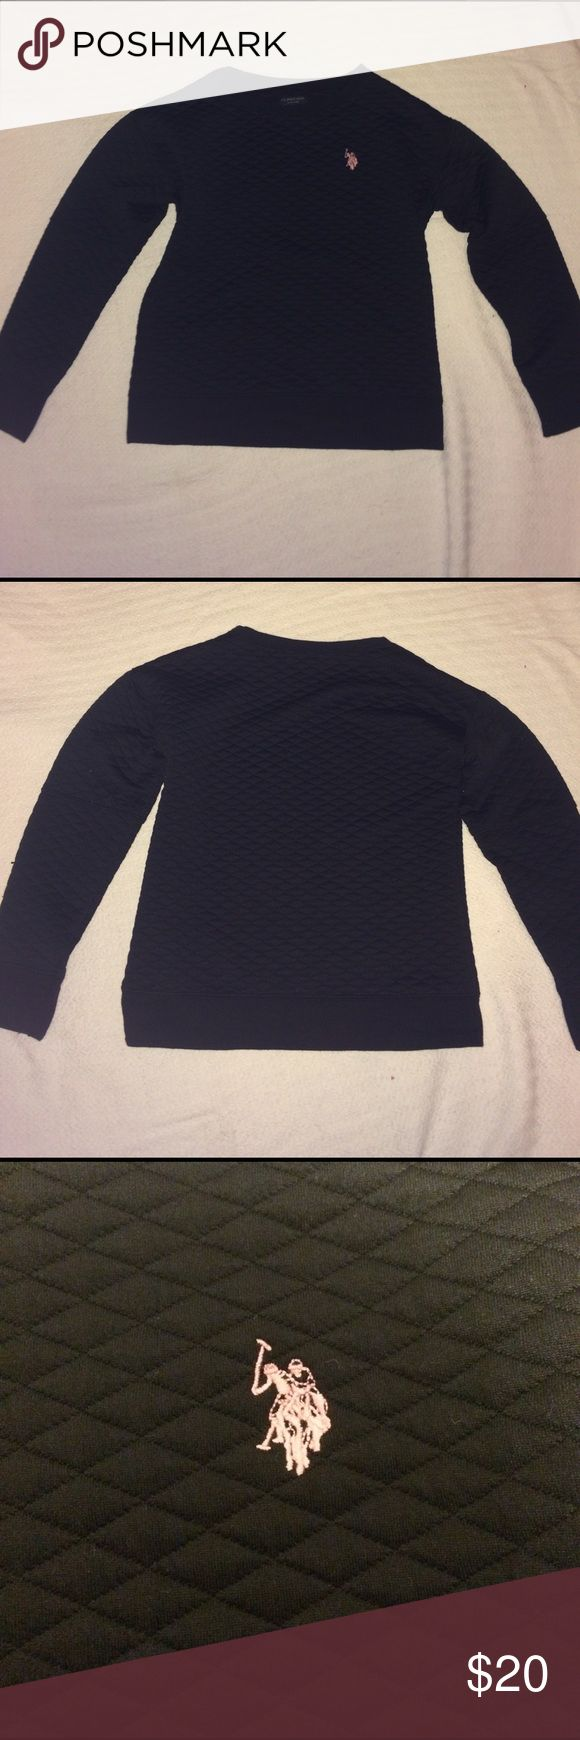 Long-sleeve Polo shirt. This is a black Polo shirt that will keep you warm in the winter.                                     *NEVER WORN* U.S. Polo Assn. Shirts & Tops Sweaters